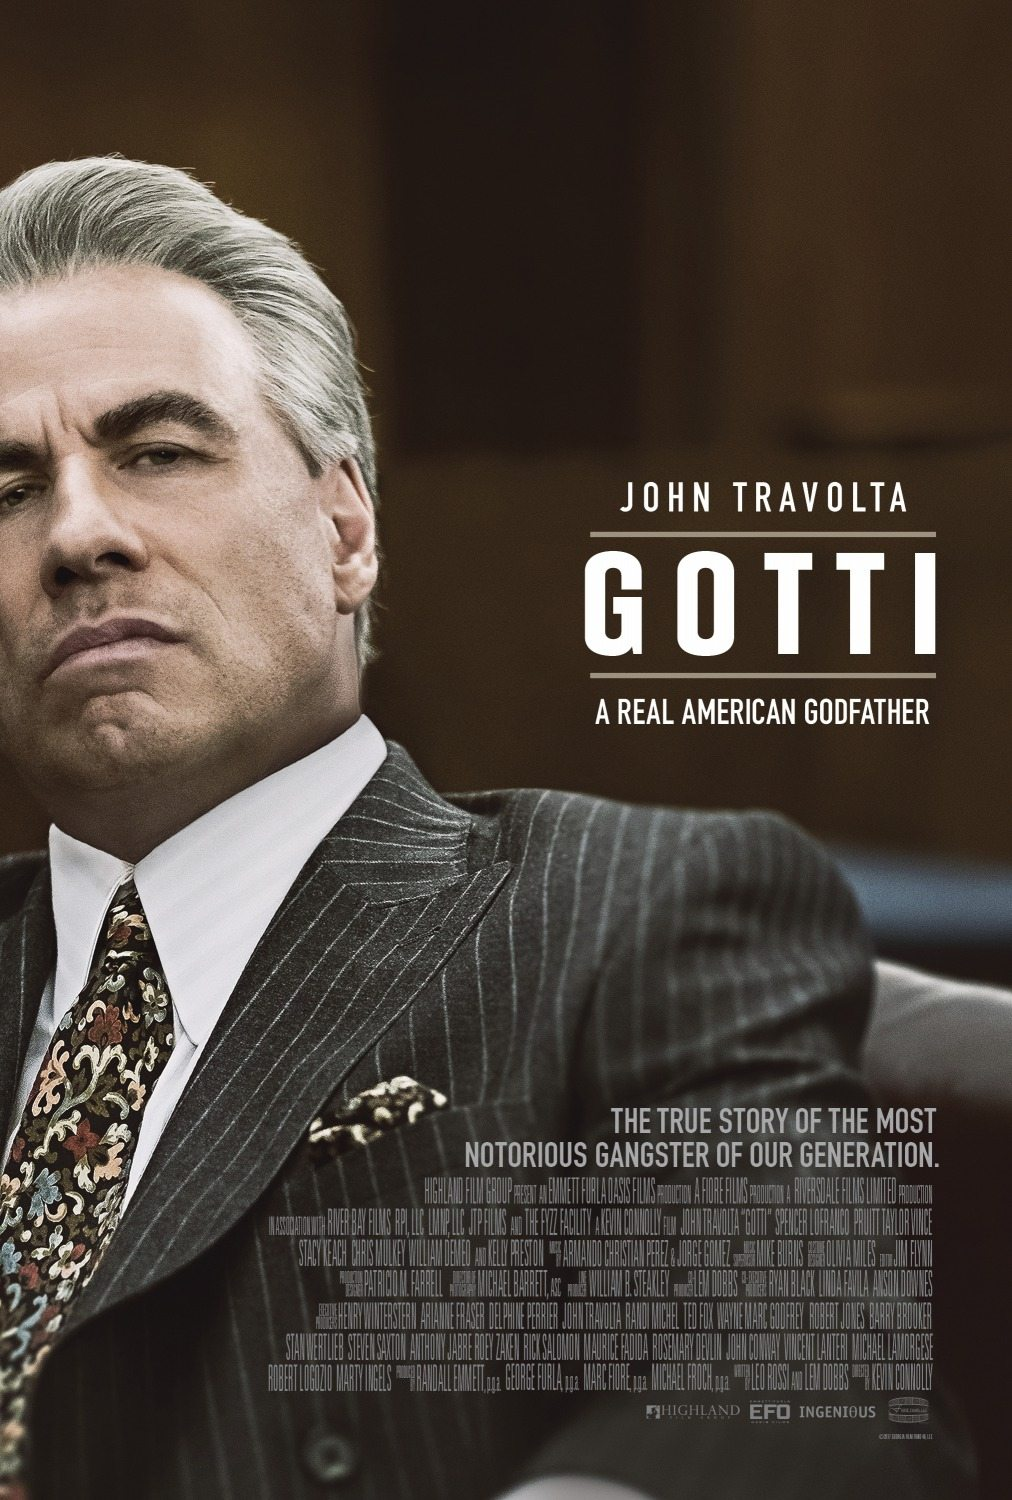 john travolta is a real american godfather on new poster